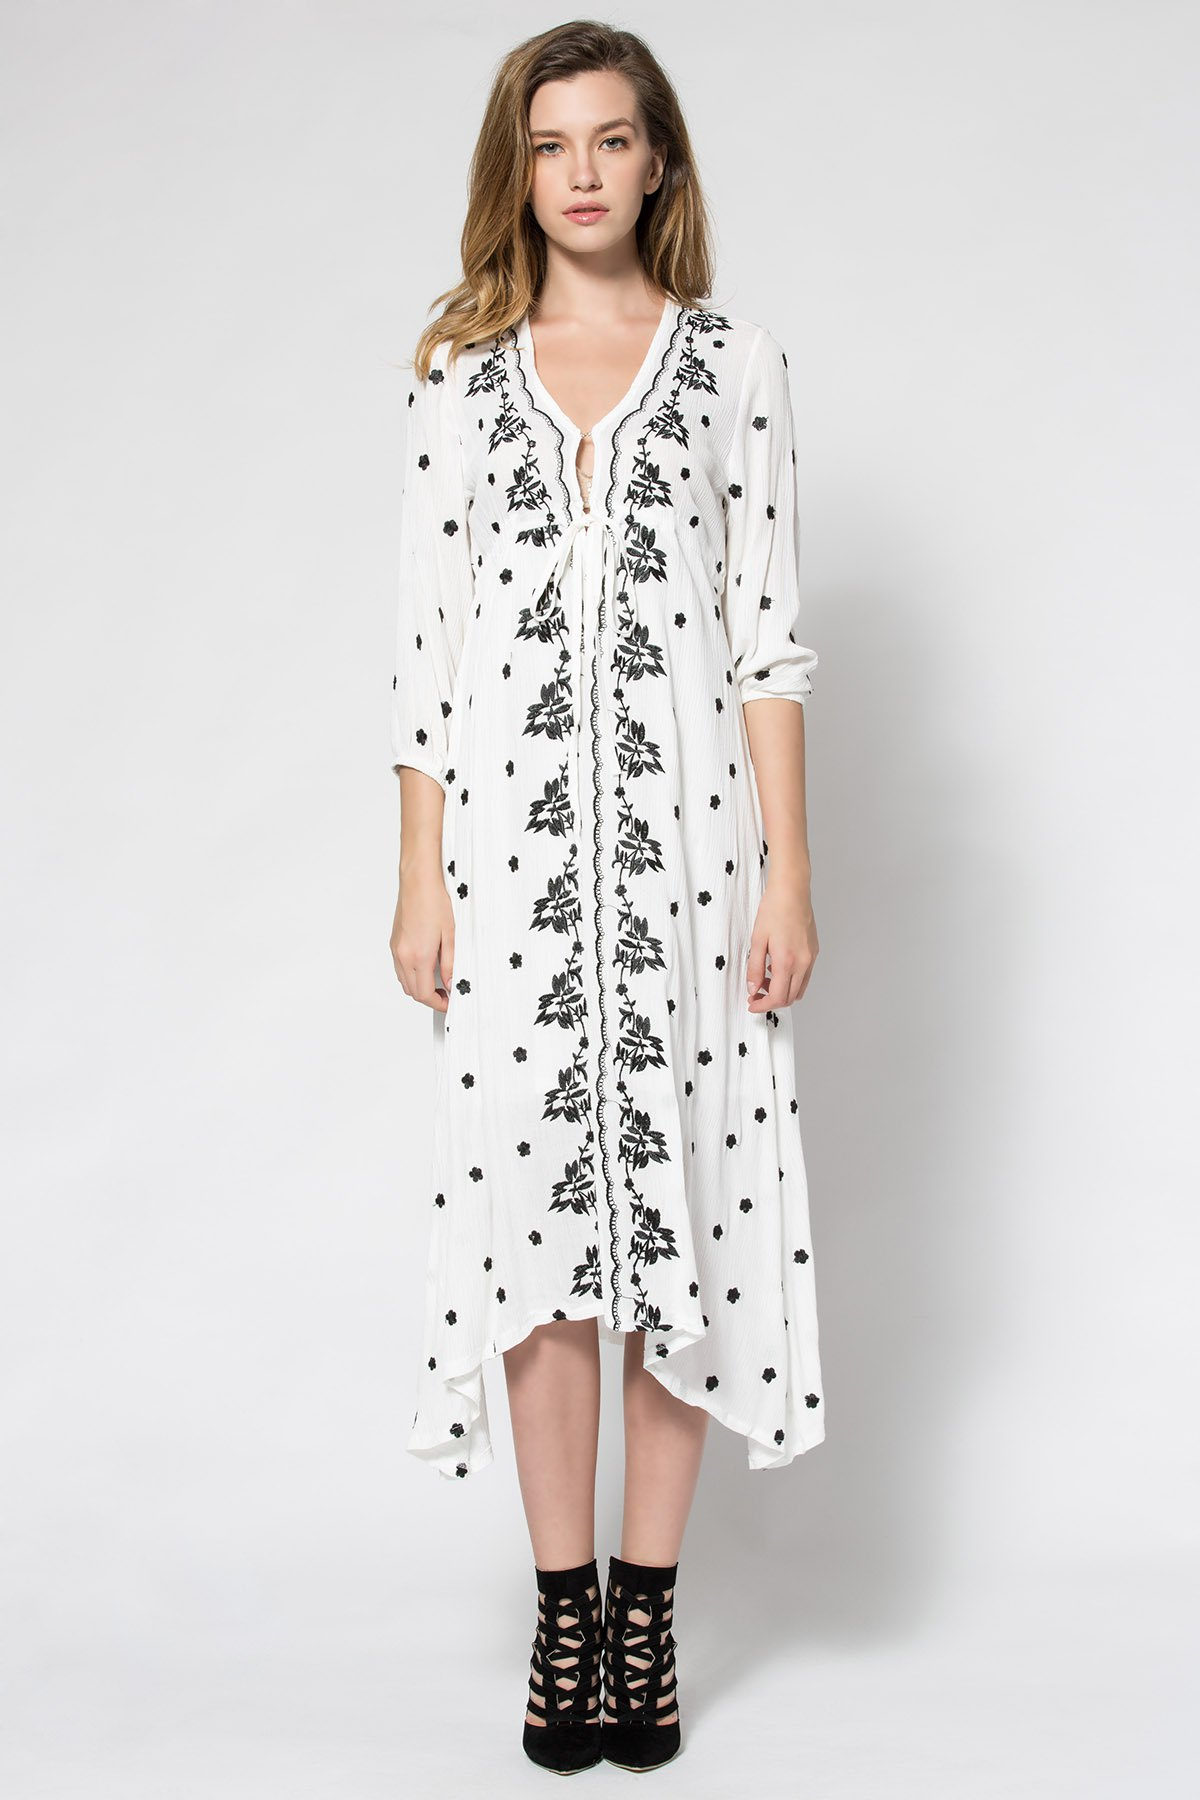 Tiny Floral Embroidery Tie-Up 3/4 Sleeve Dress